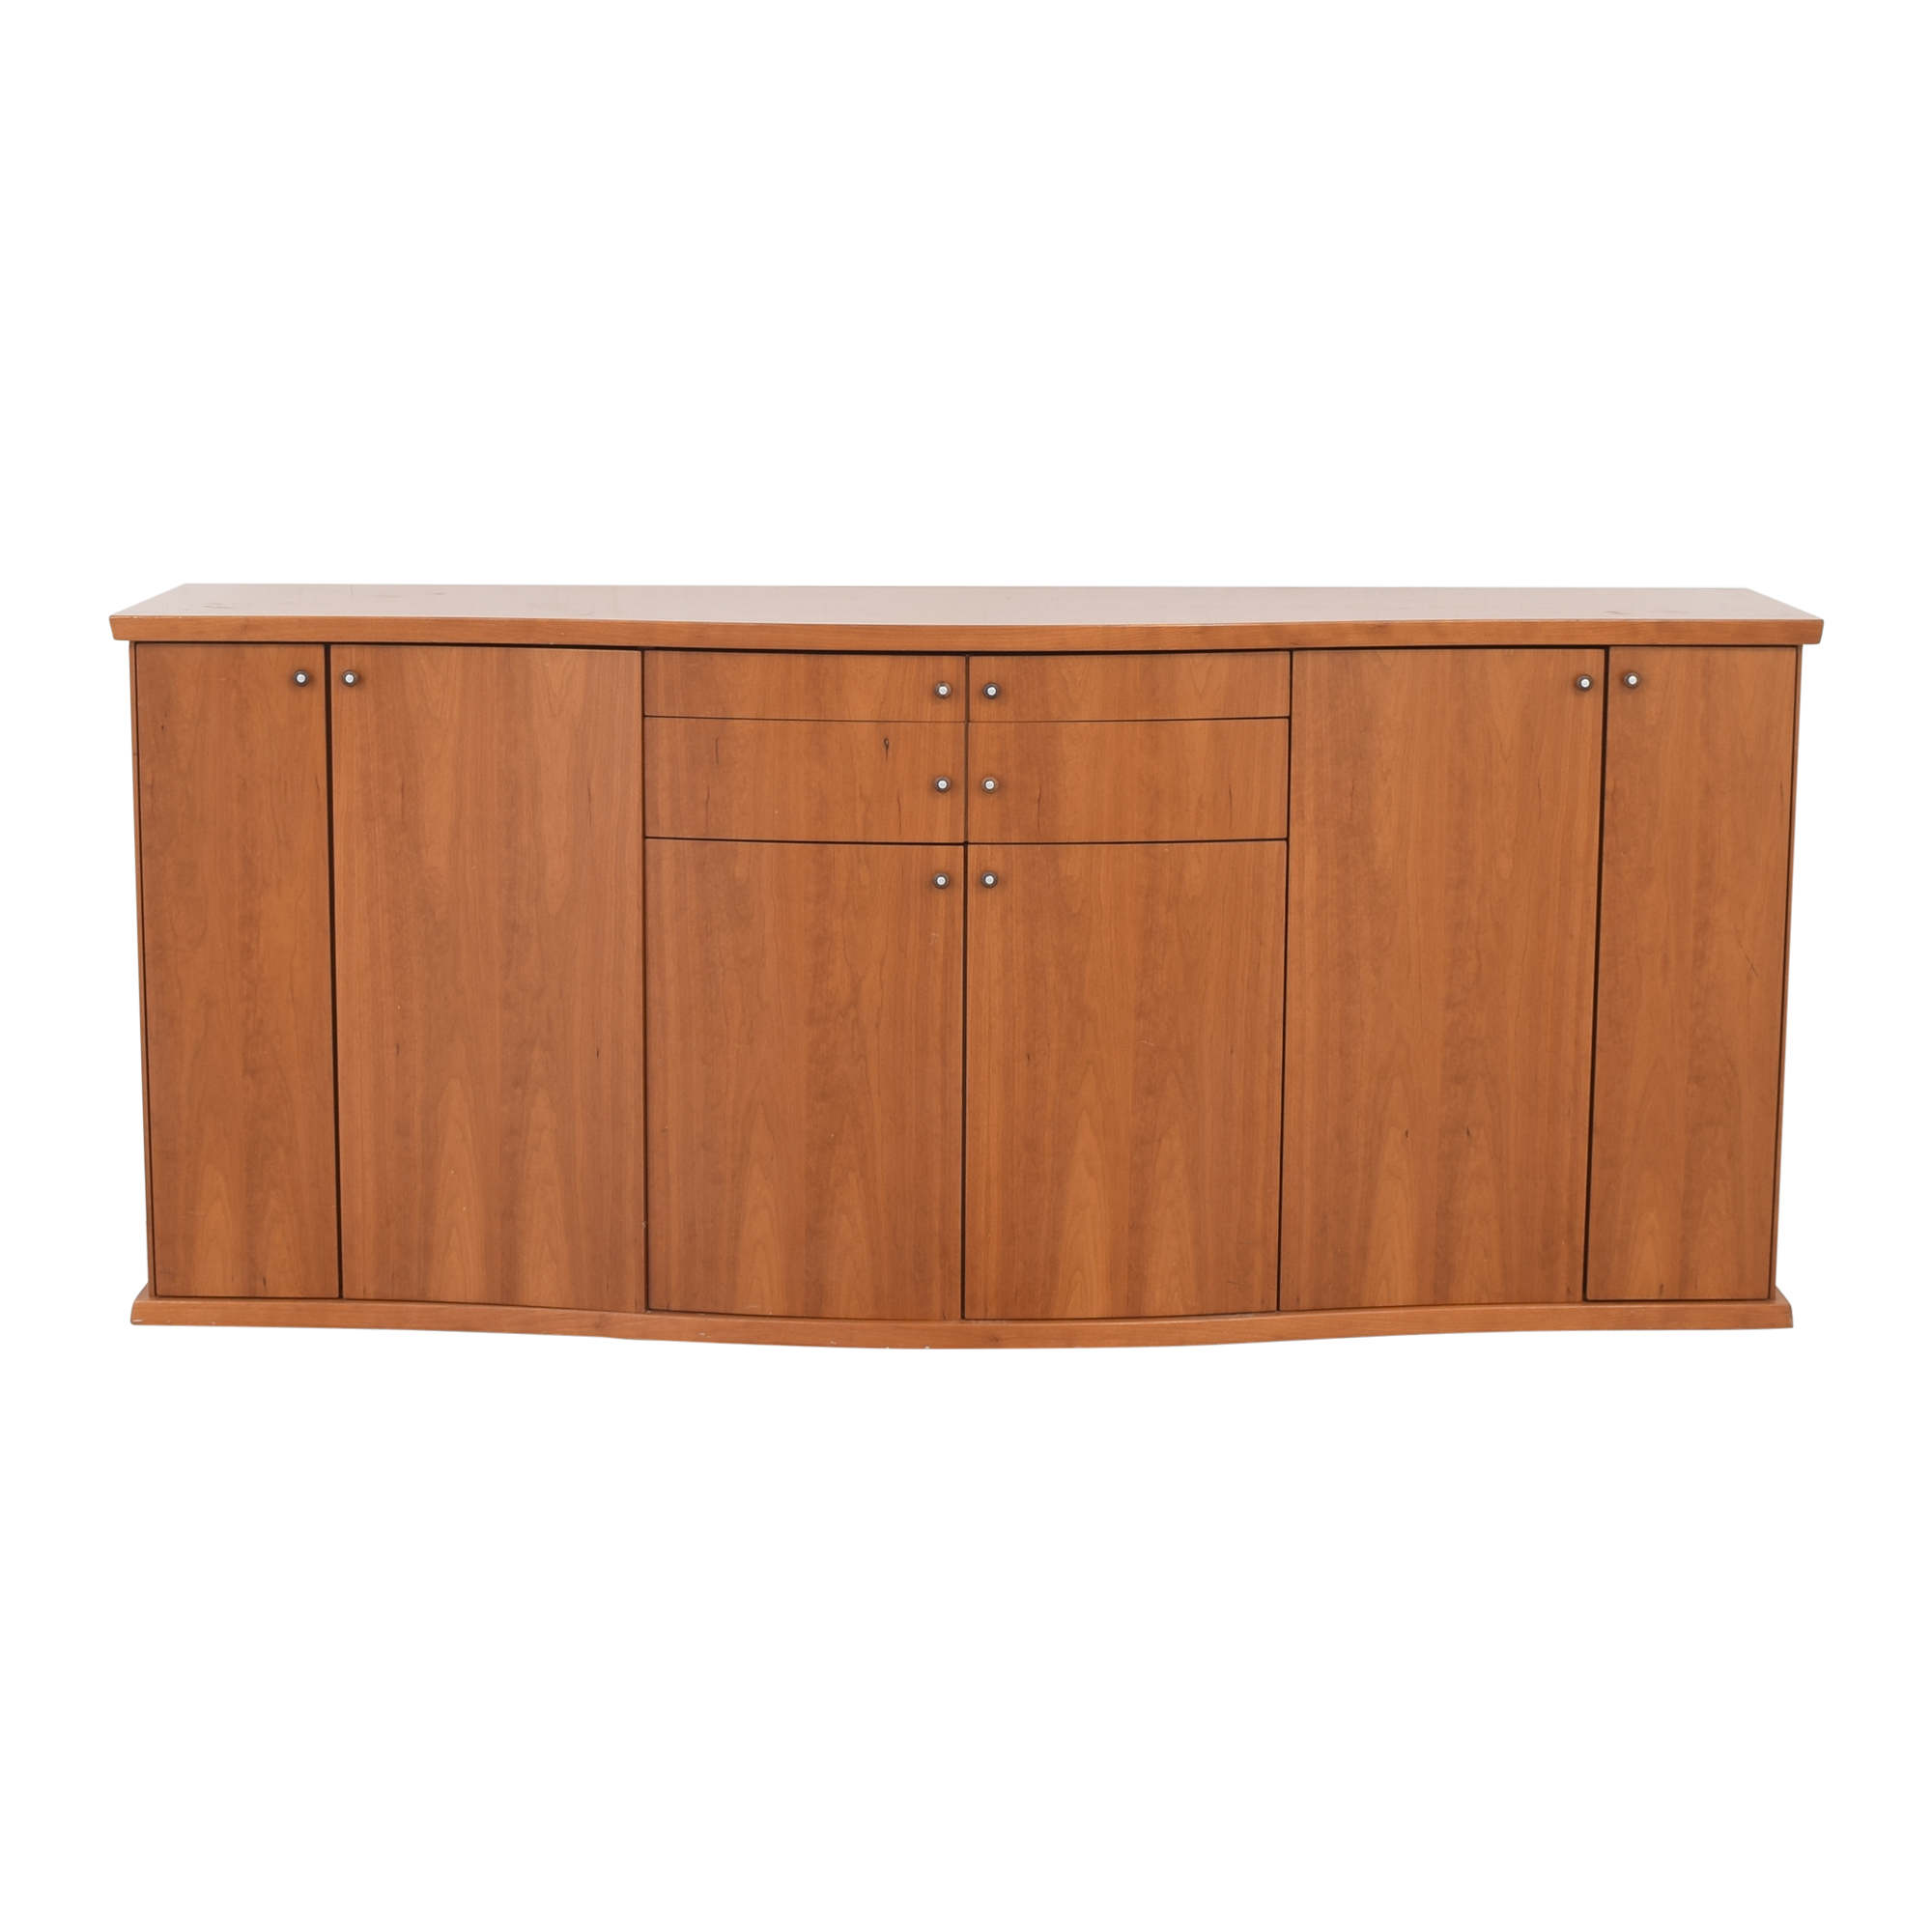 Maurice Villency Maurice Villency Sideboard used